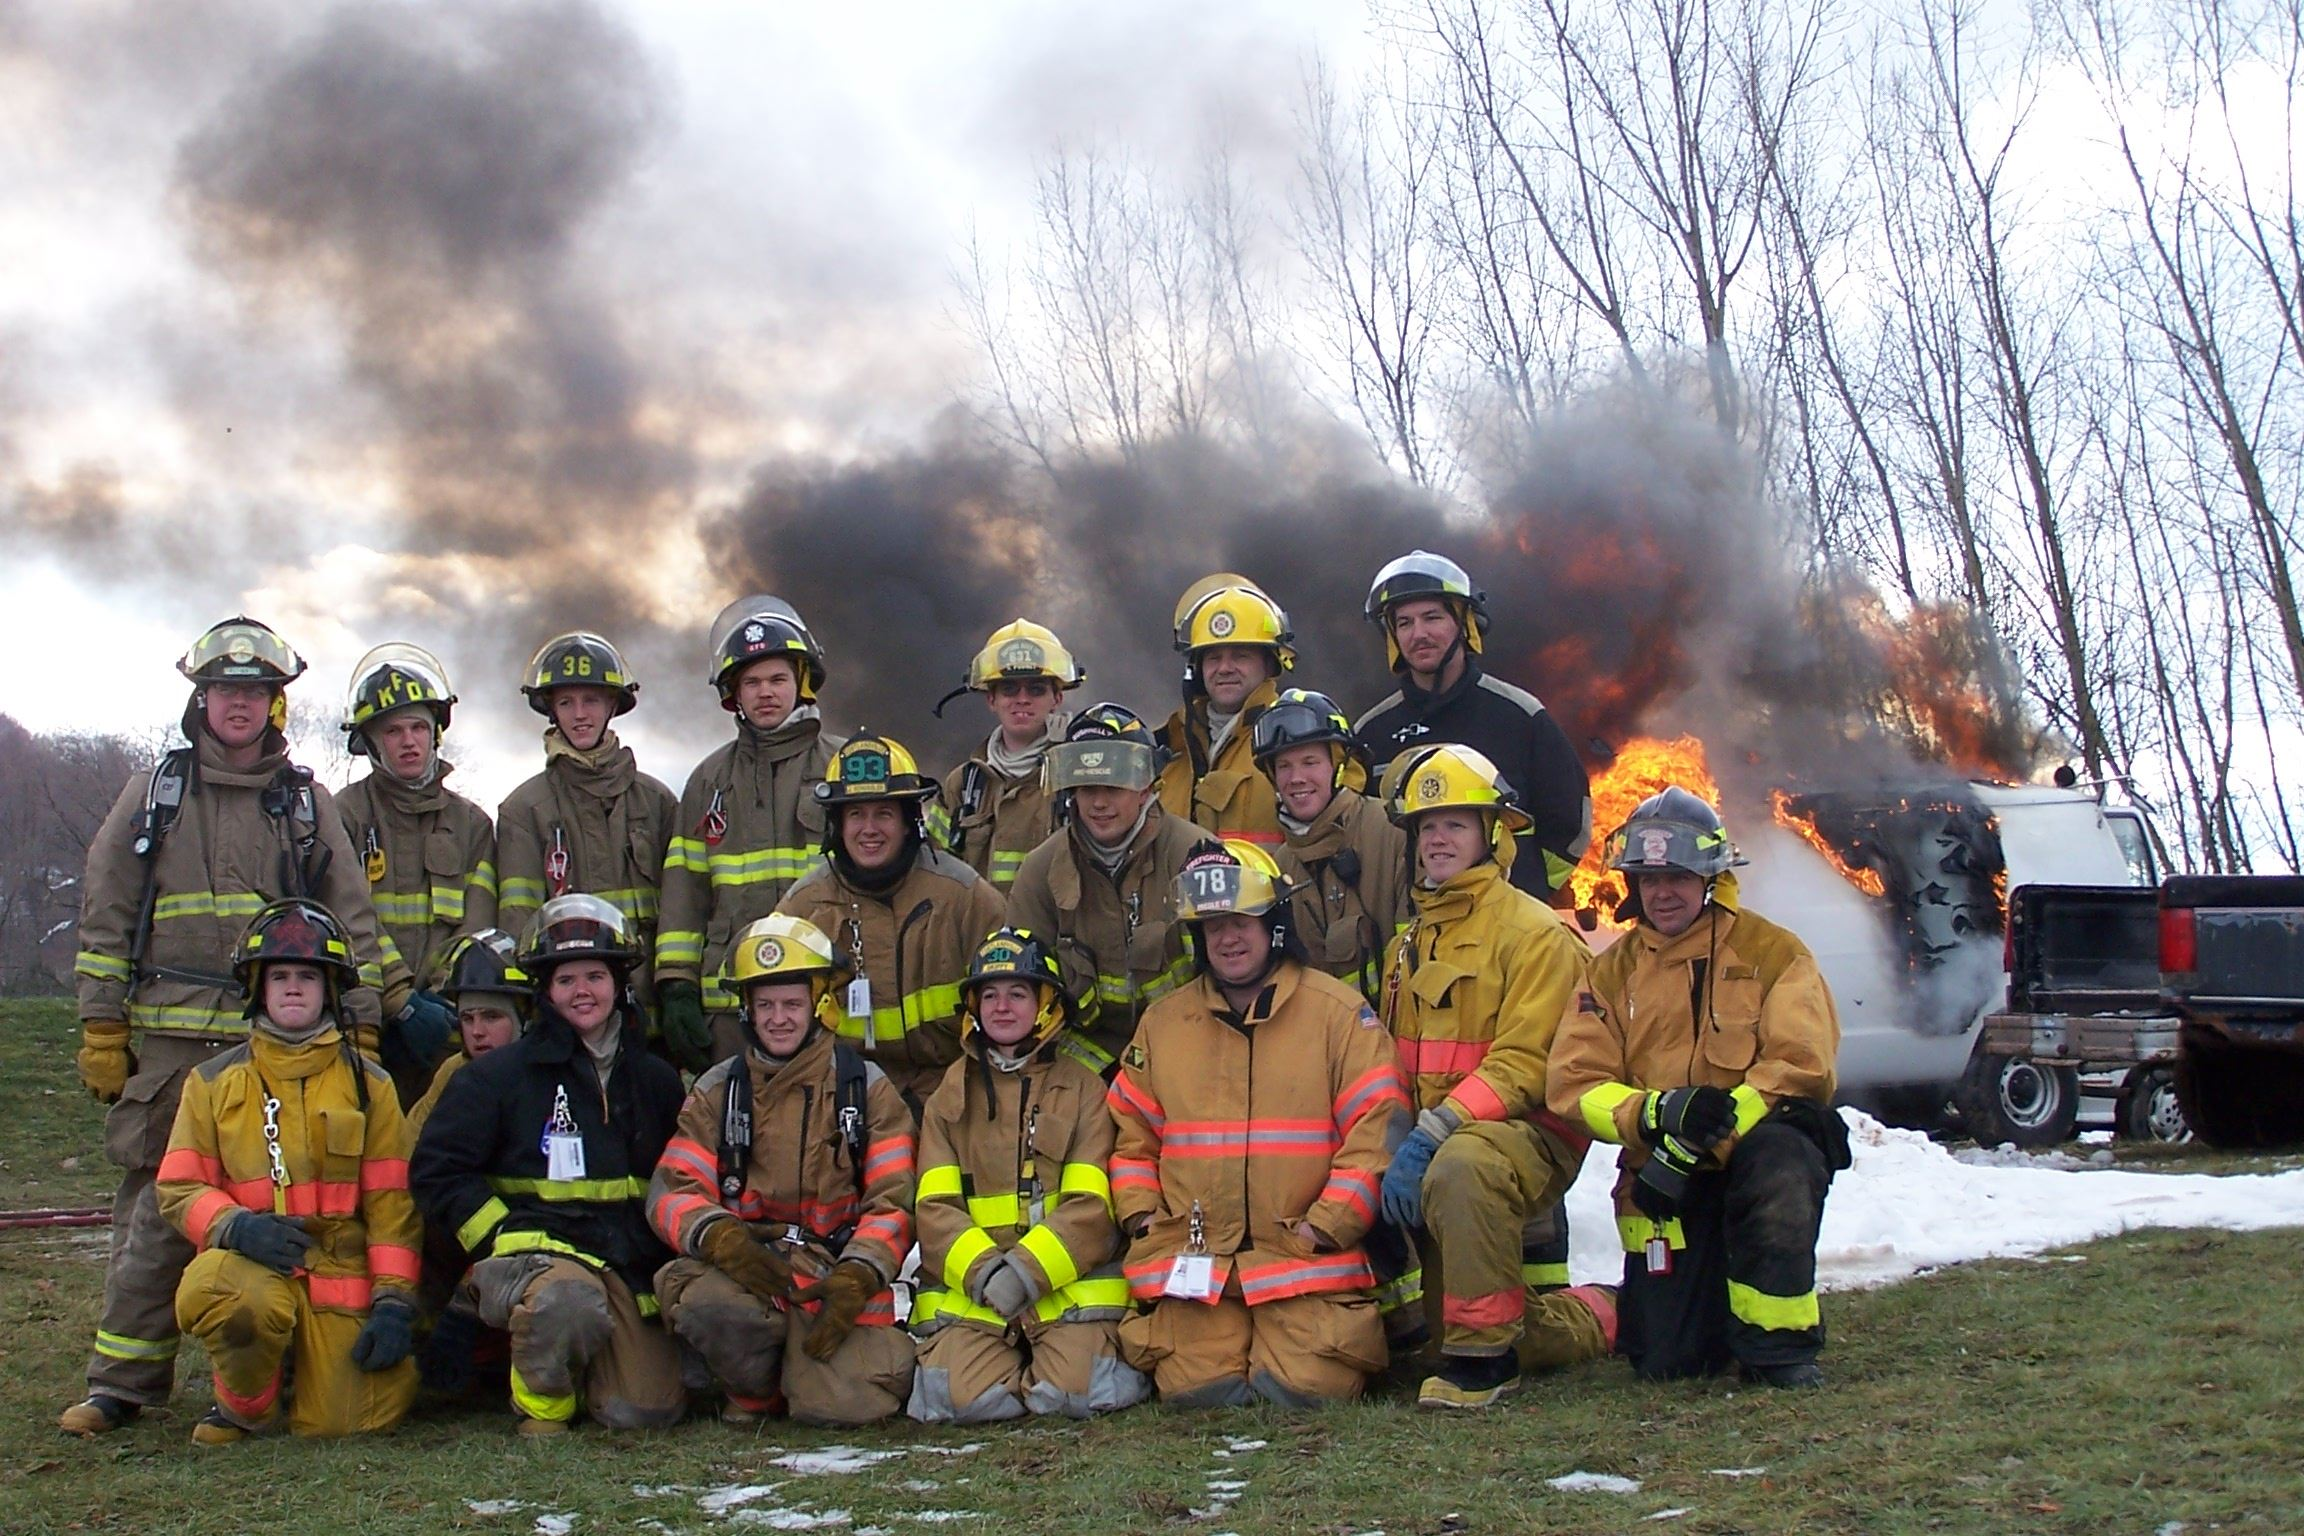 A group of firefighters pose for a picture after a car fire training.